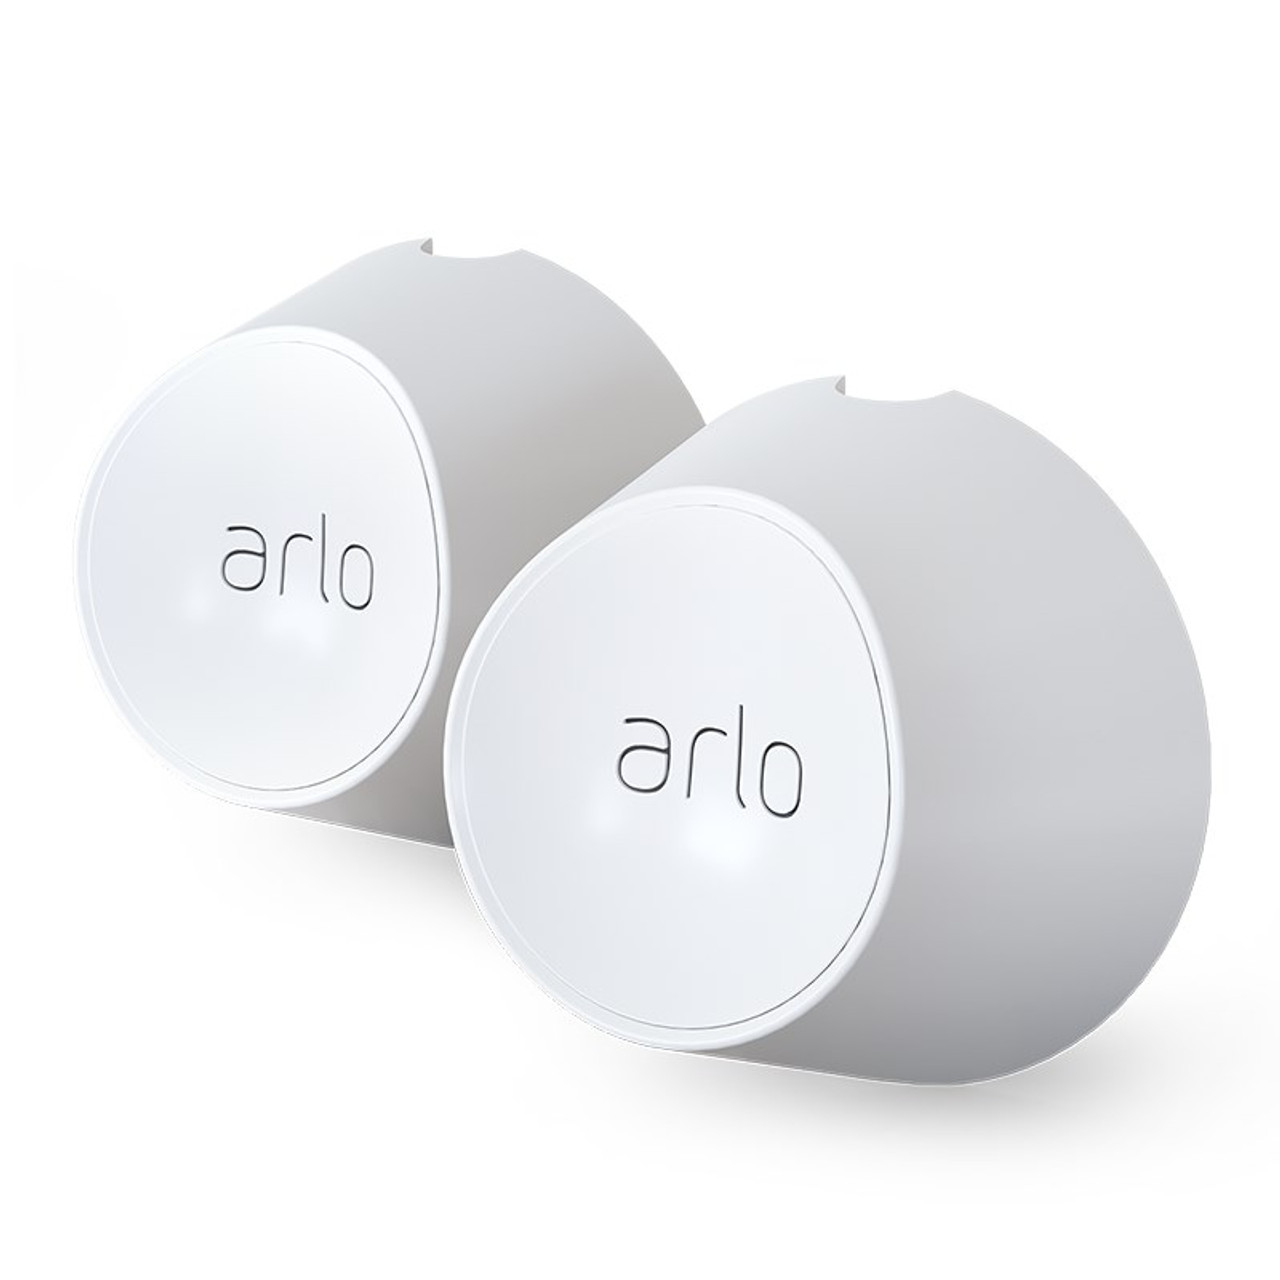 Image for Arlo Ultra Magnetic Wall Mount - 2 Pack CX Computer Superstore